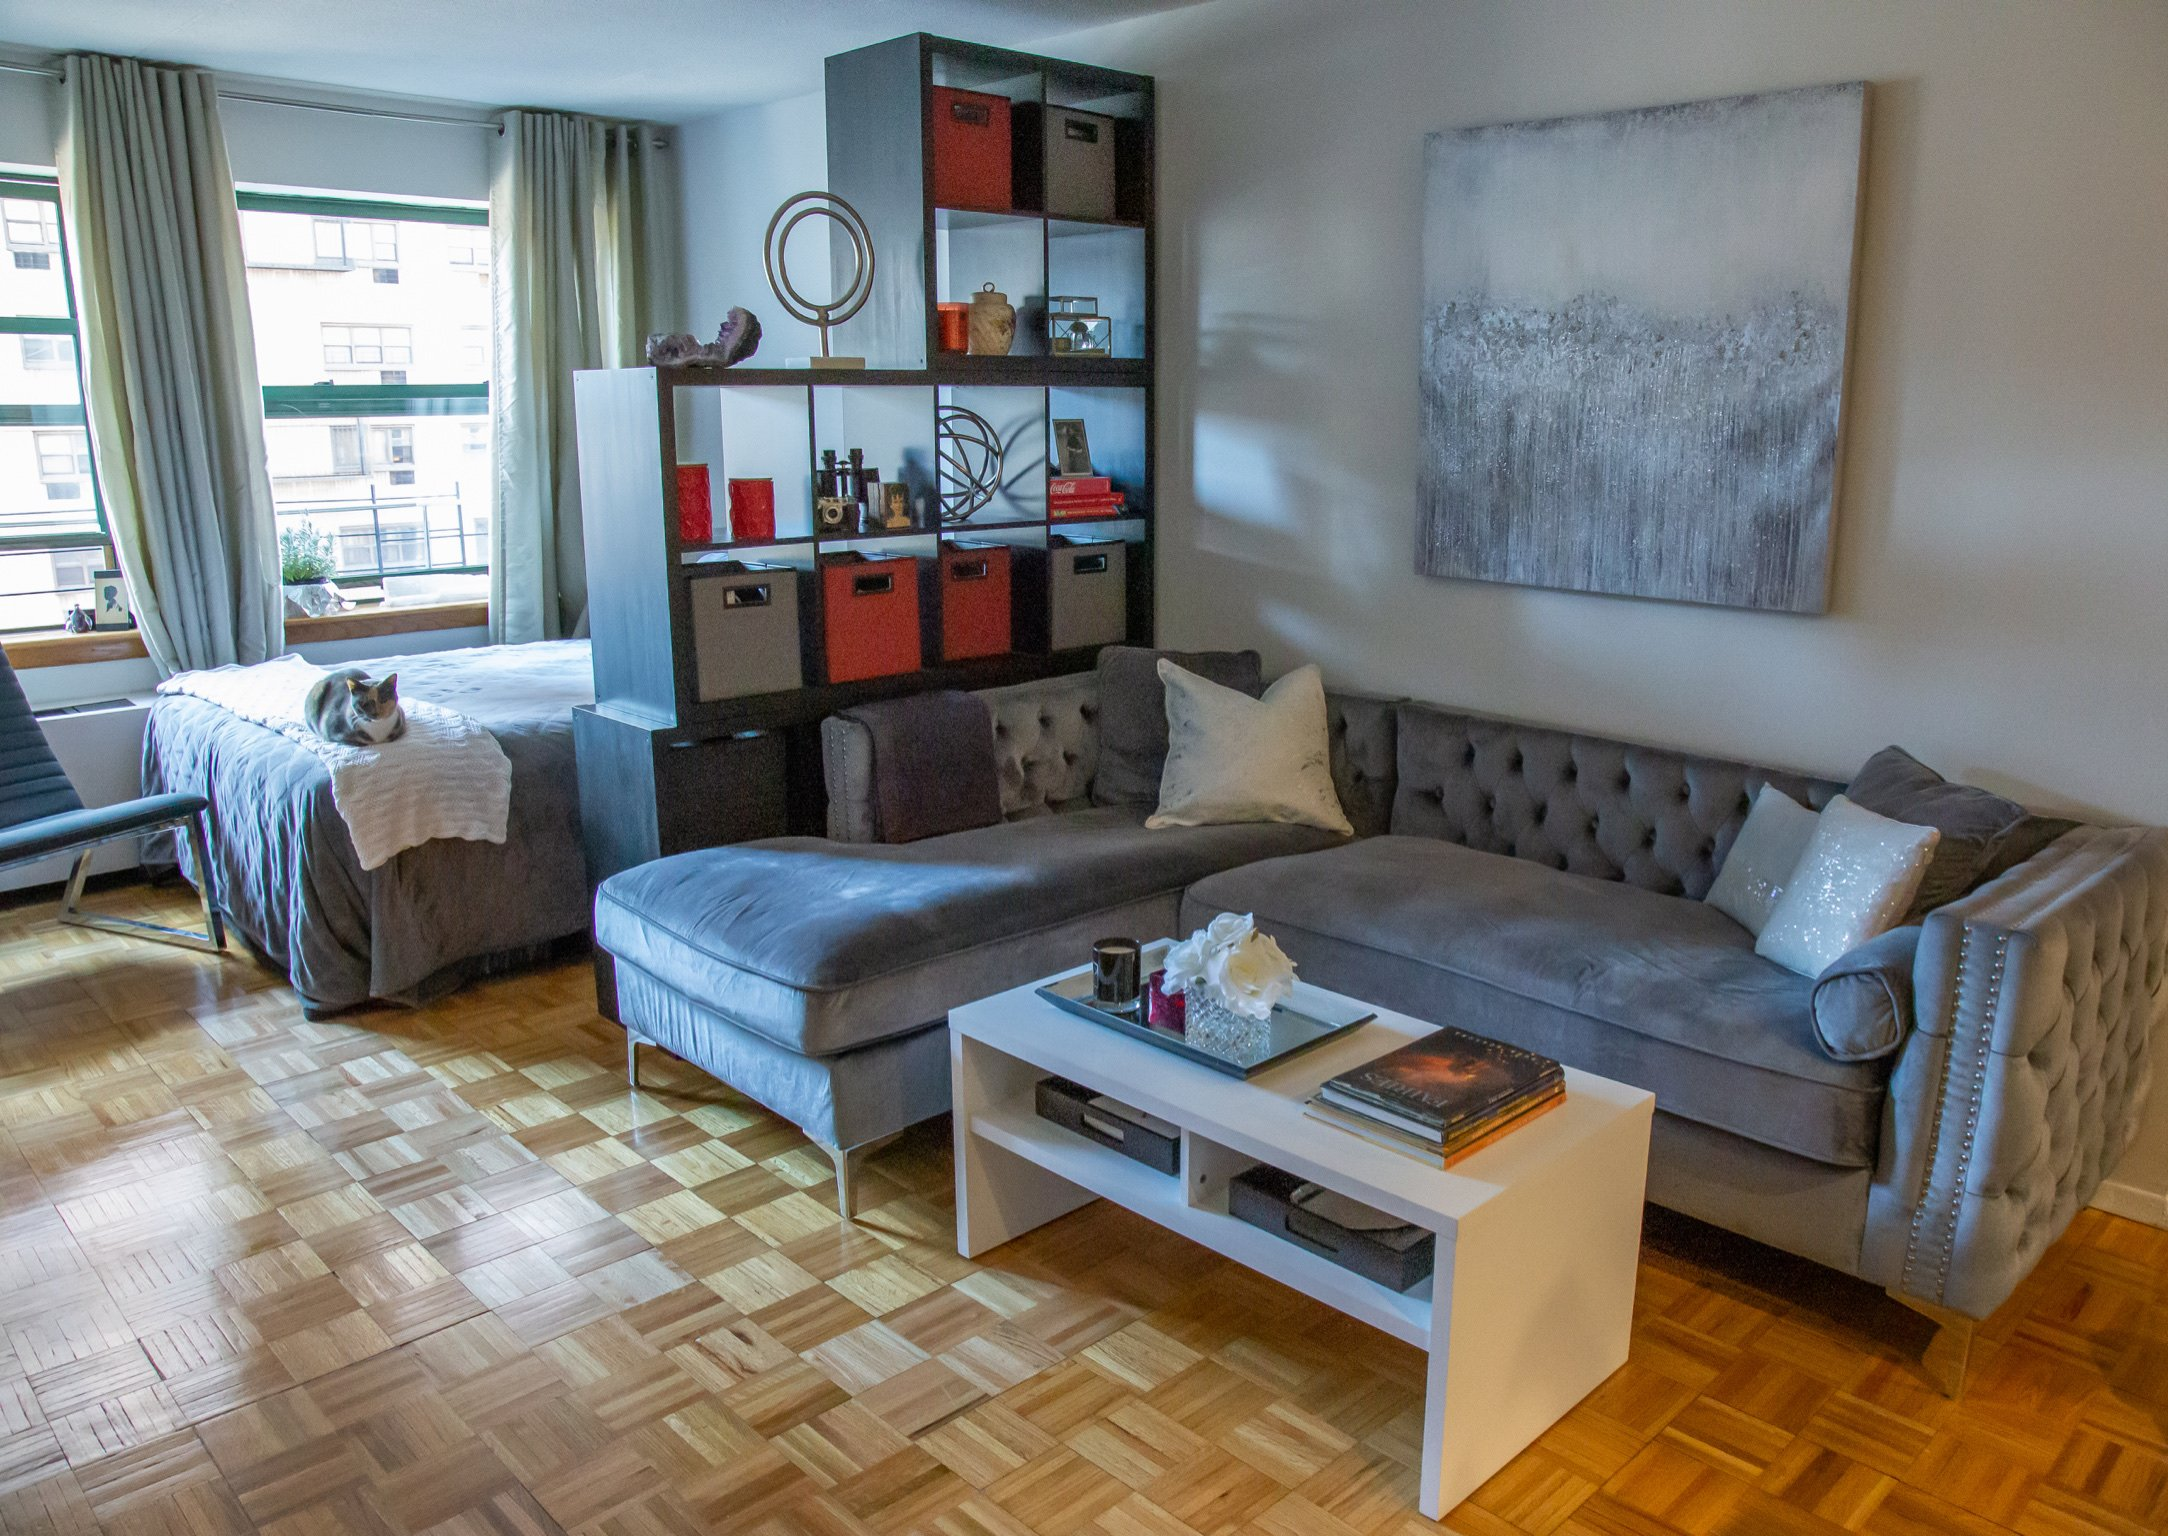 Before and After: Barbara Reich Transforms a NYC Apartment on WPIX